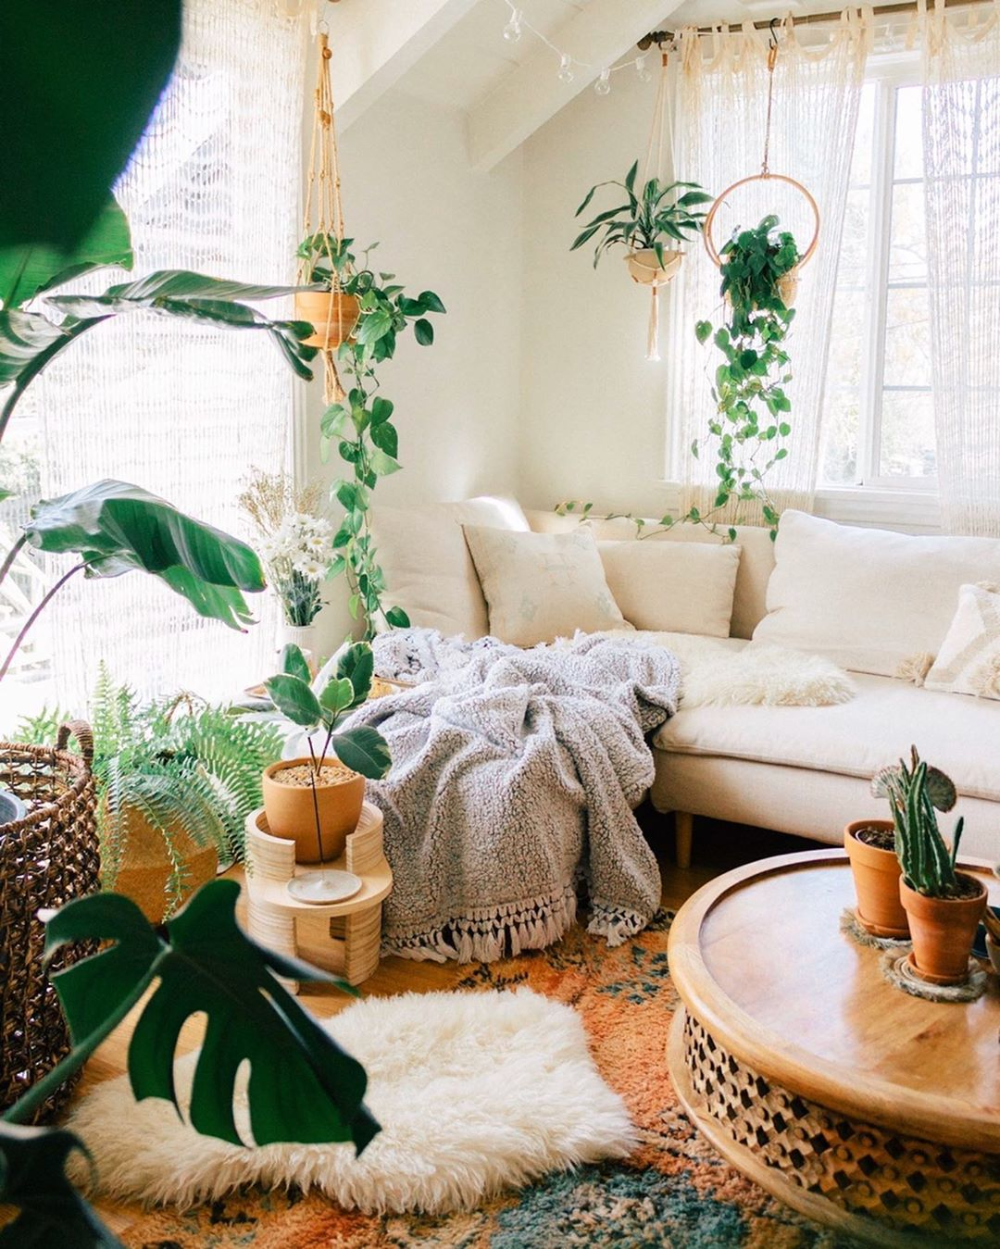 Sara Toufali On Instagram Fave Cozy Corner Made Complete Thanks To This Darling Lil Plant Stand From Jungalow Decor Cheap Home Decor Aesthetic Room Decor #plants #for #living #room #corner